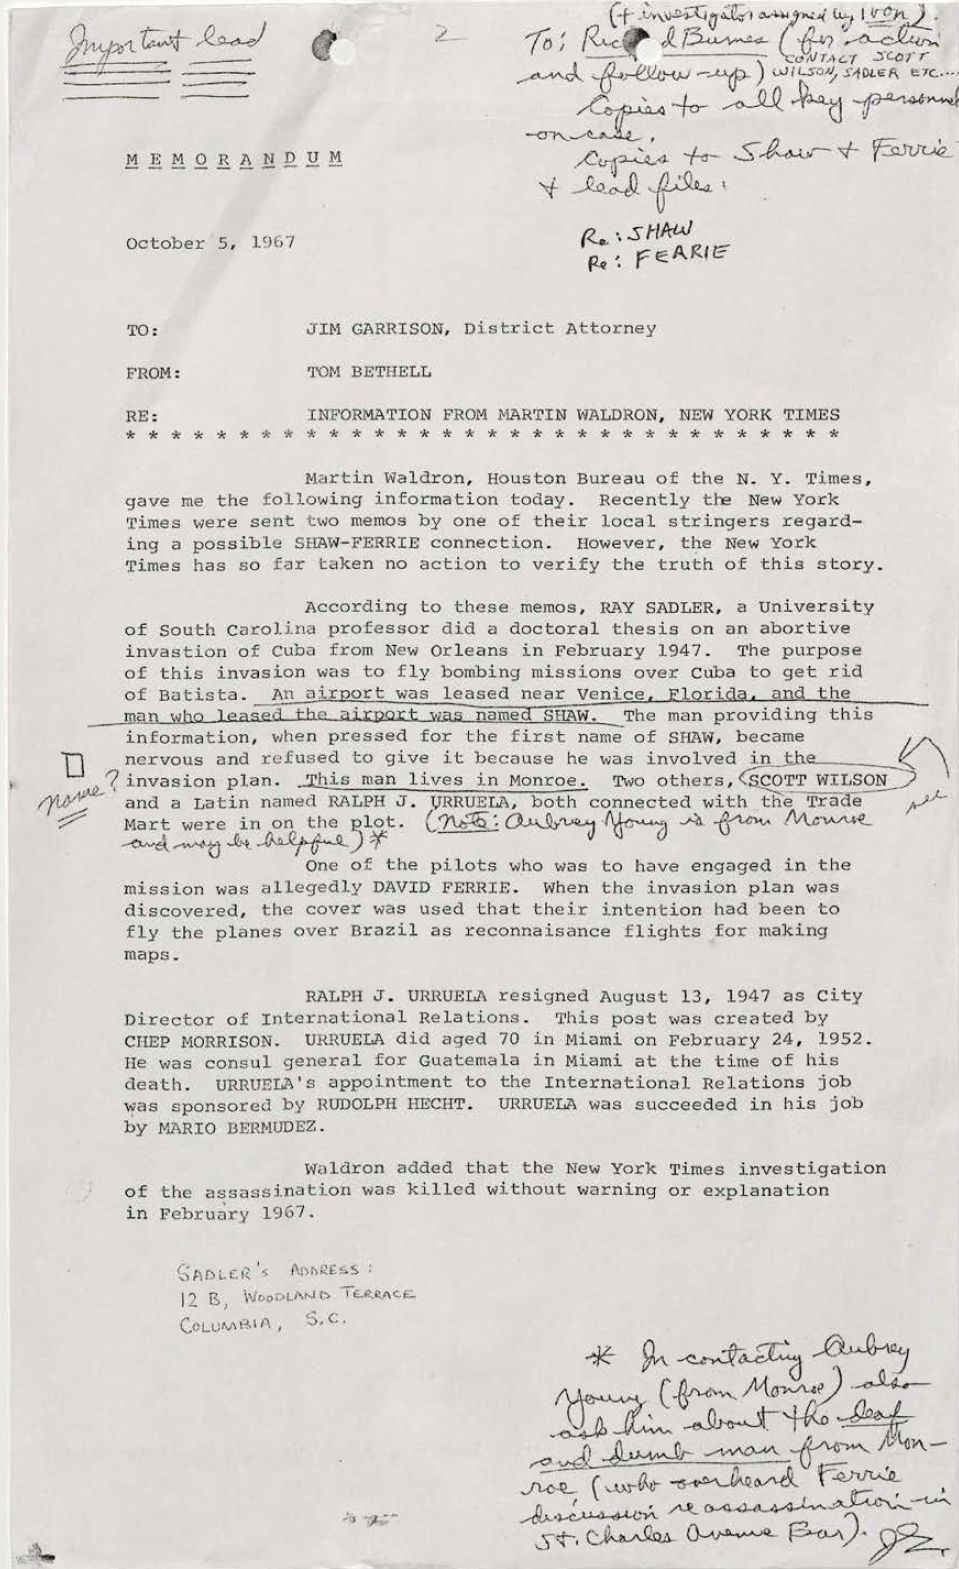 assassination of jfk essay Essay on friday, november 22nd 1963 at 12:30 pm the 35th president of the united states of america, john fitzgerald kennedy assassinated while he rode in an open limousine though the streets of dallas this event, which abruptly and severely altered the course of history, it has created more.